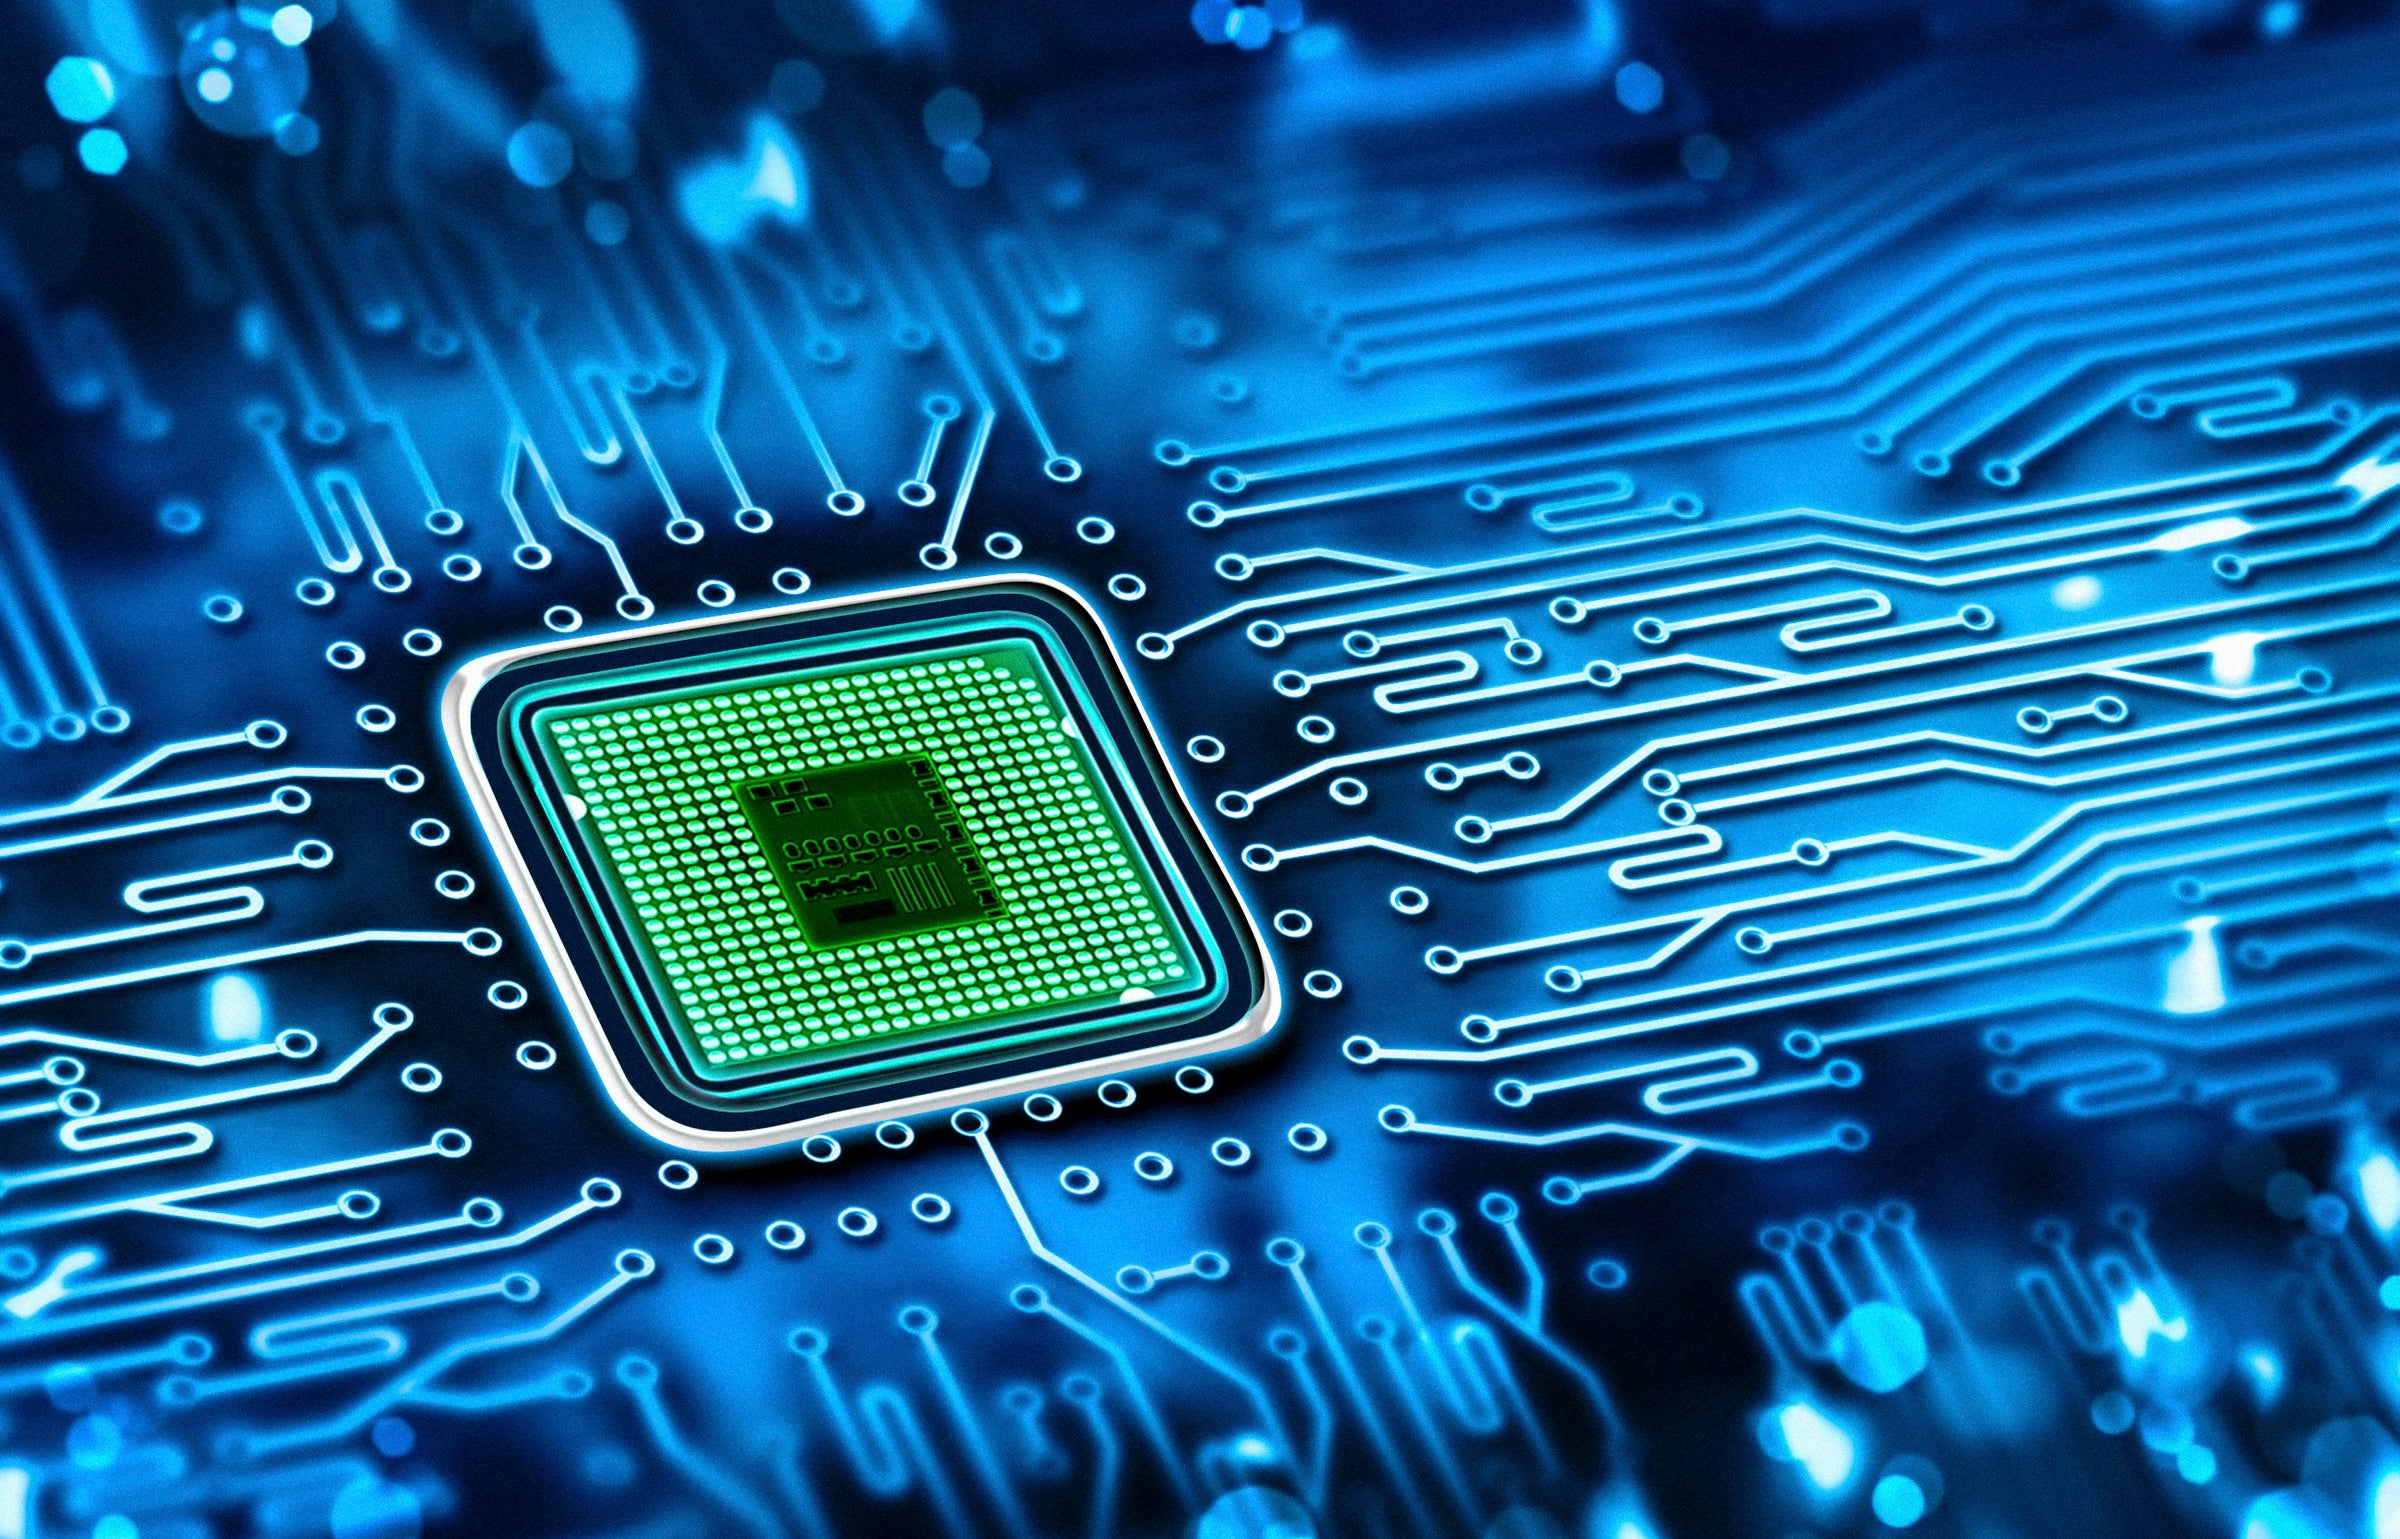 Why ARM Holdings plc Stock Skyrocketed Today -- The Motley Fool